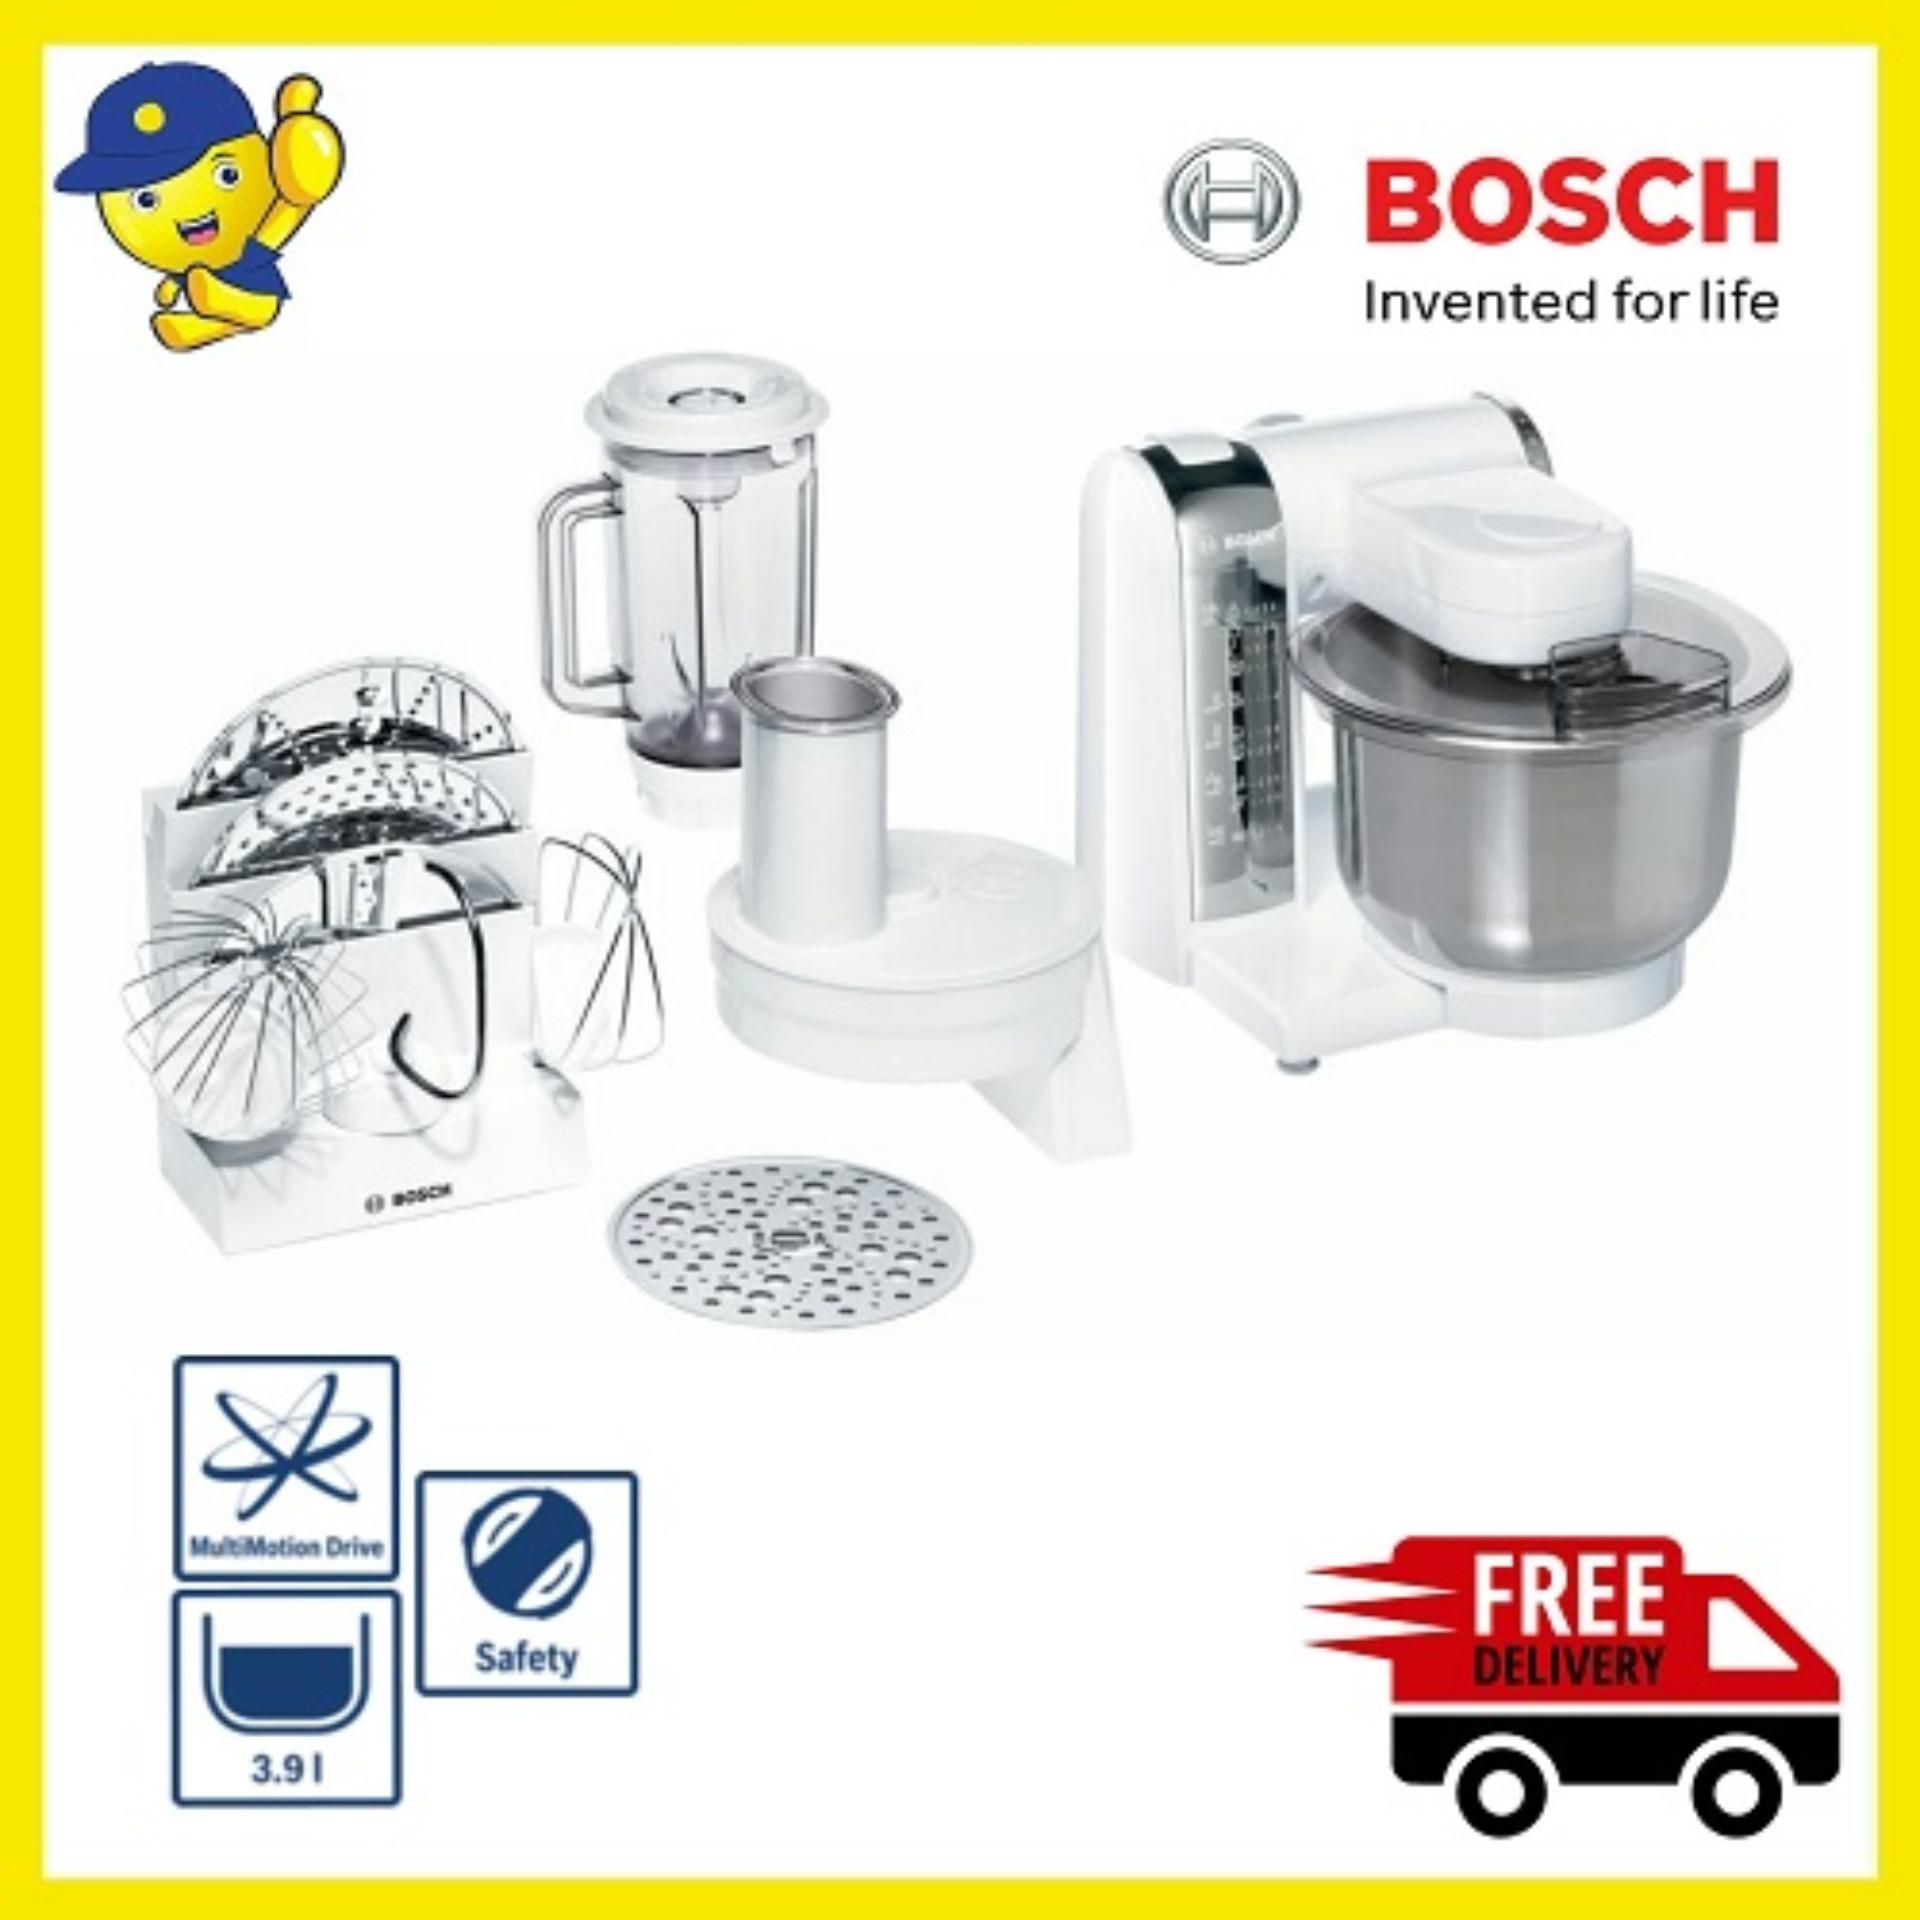 Bosch MUM48CR1 Kitchen Machine Mixer - Putih - Free Ongkir JABODETABEK